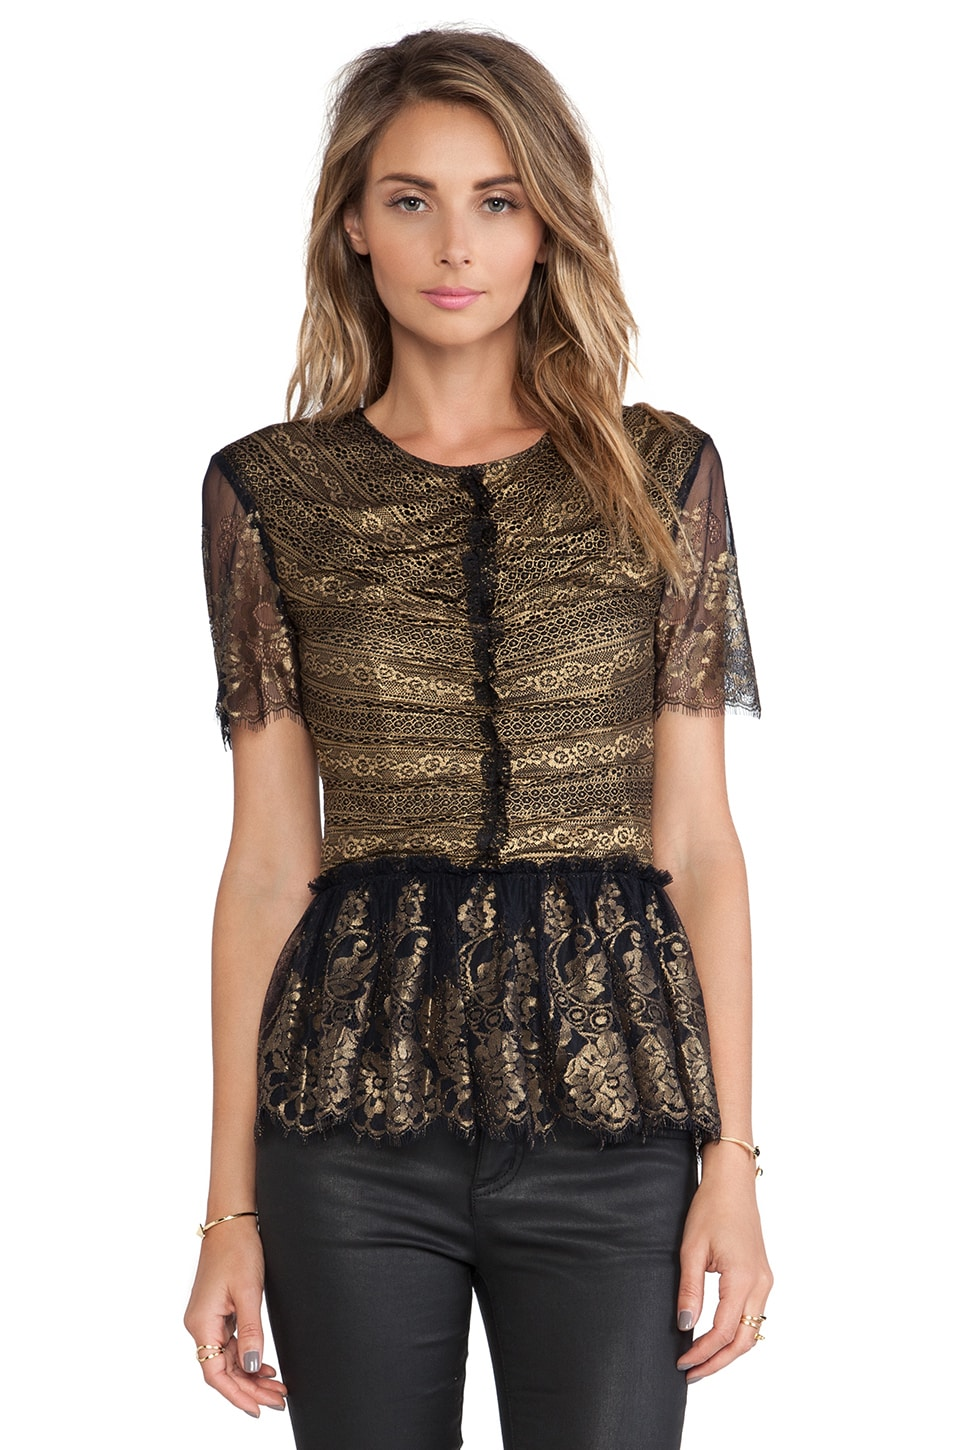 Marchesa Voyage Lace Ruffle Top in Black & Gold